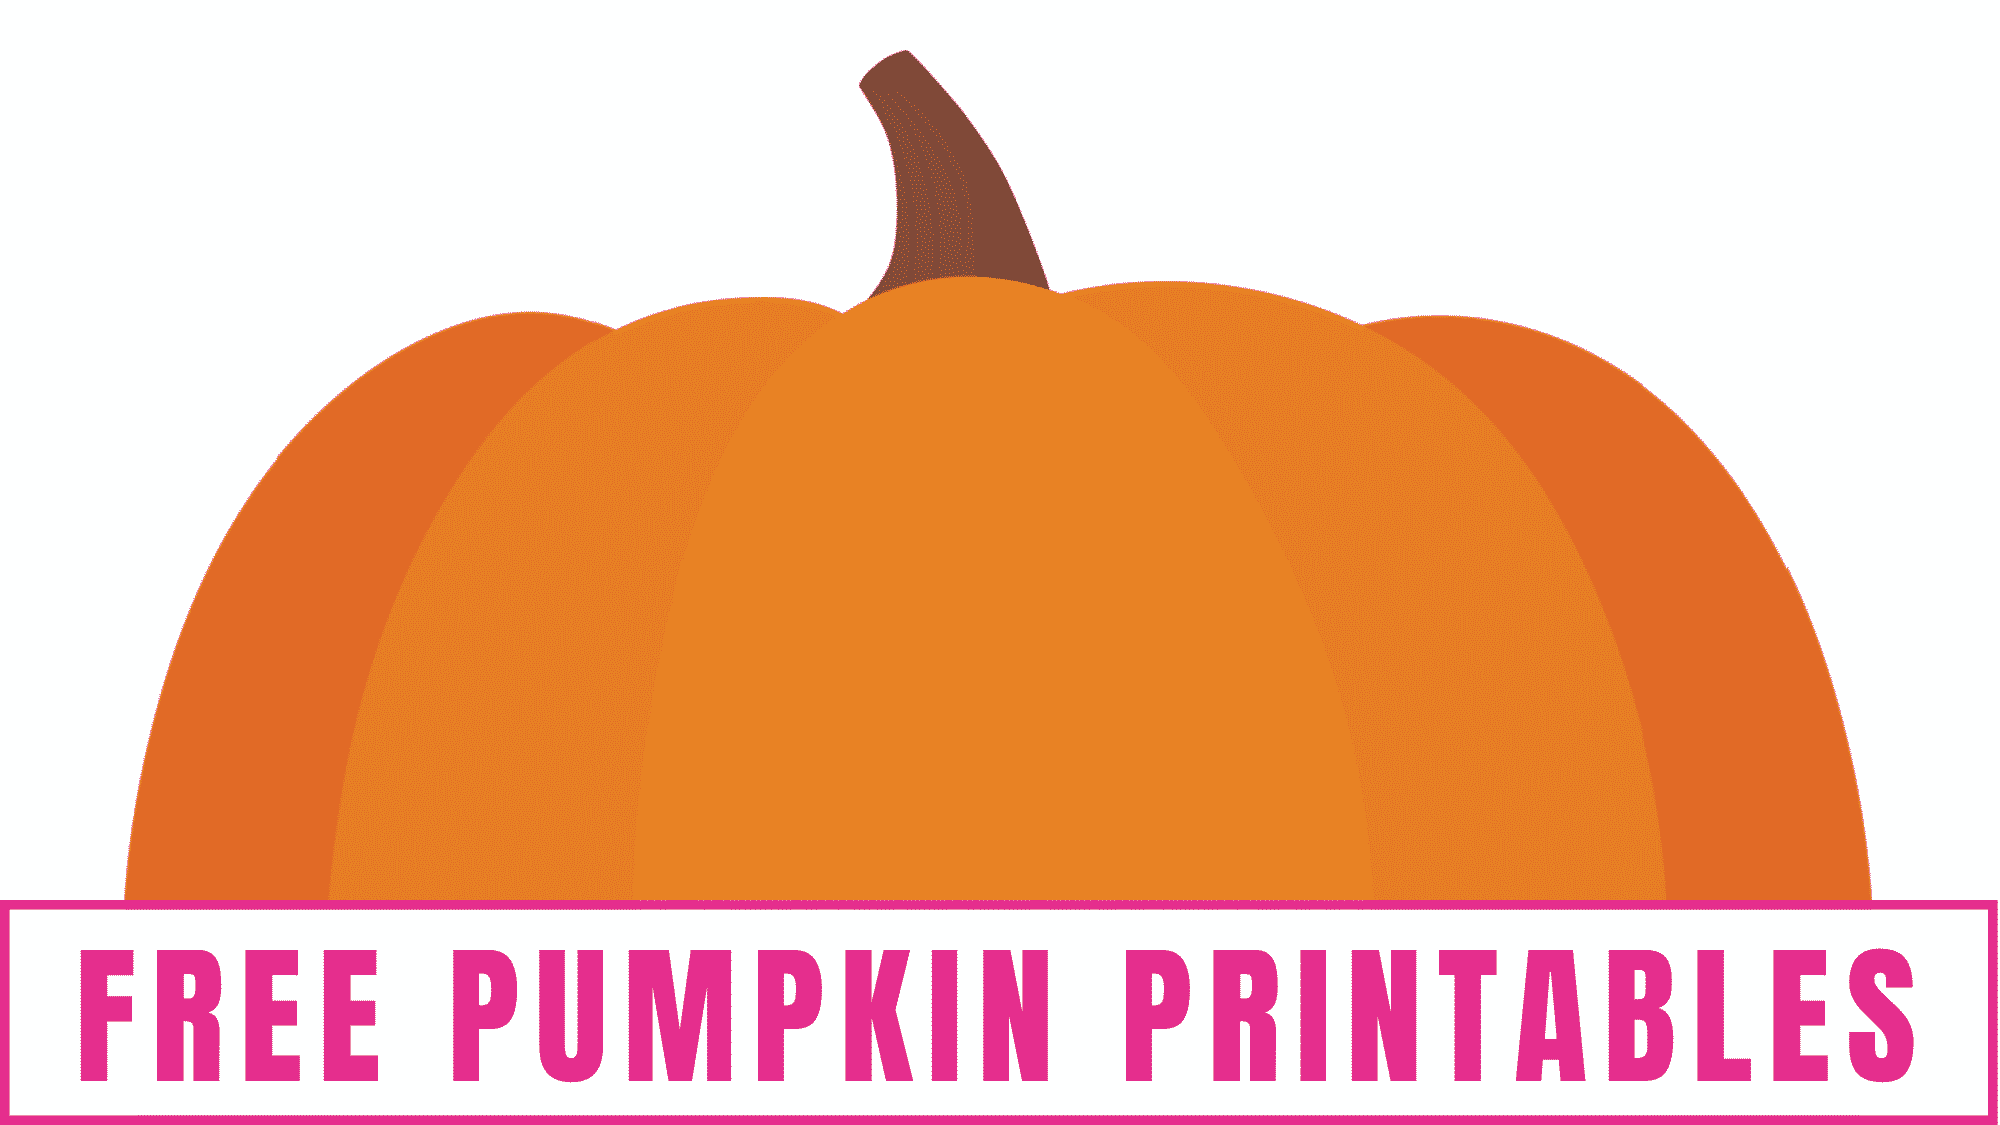 If you need easy fall coloring pages for toddlers check out these free pumpkin printables.